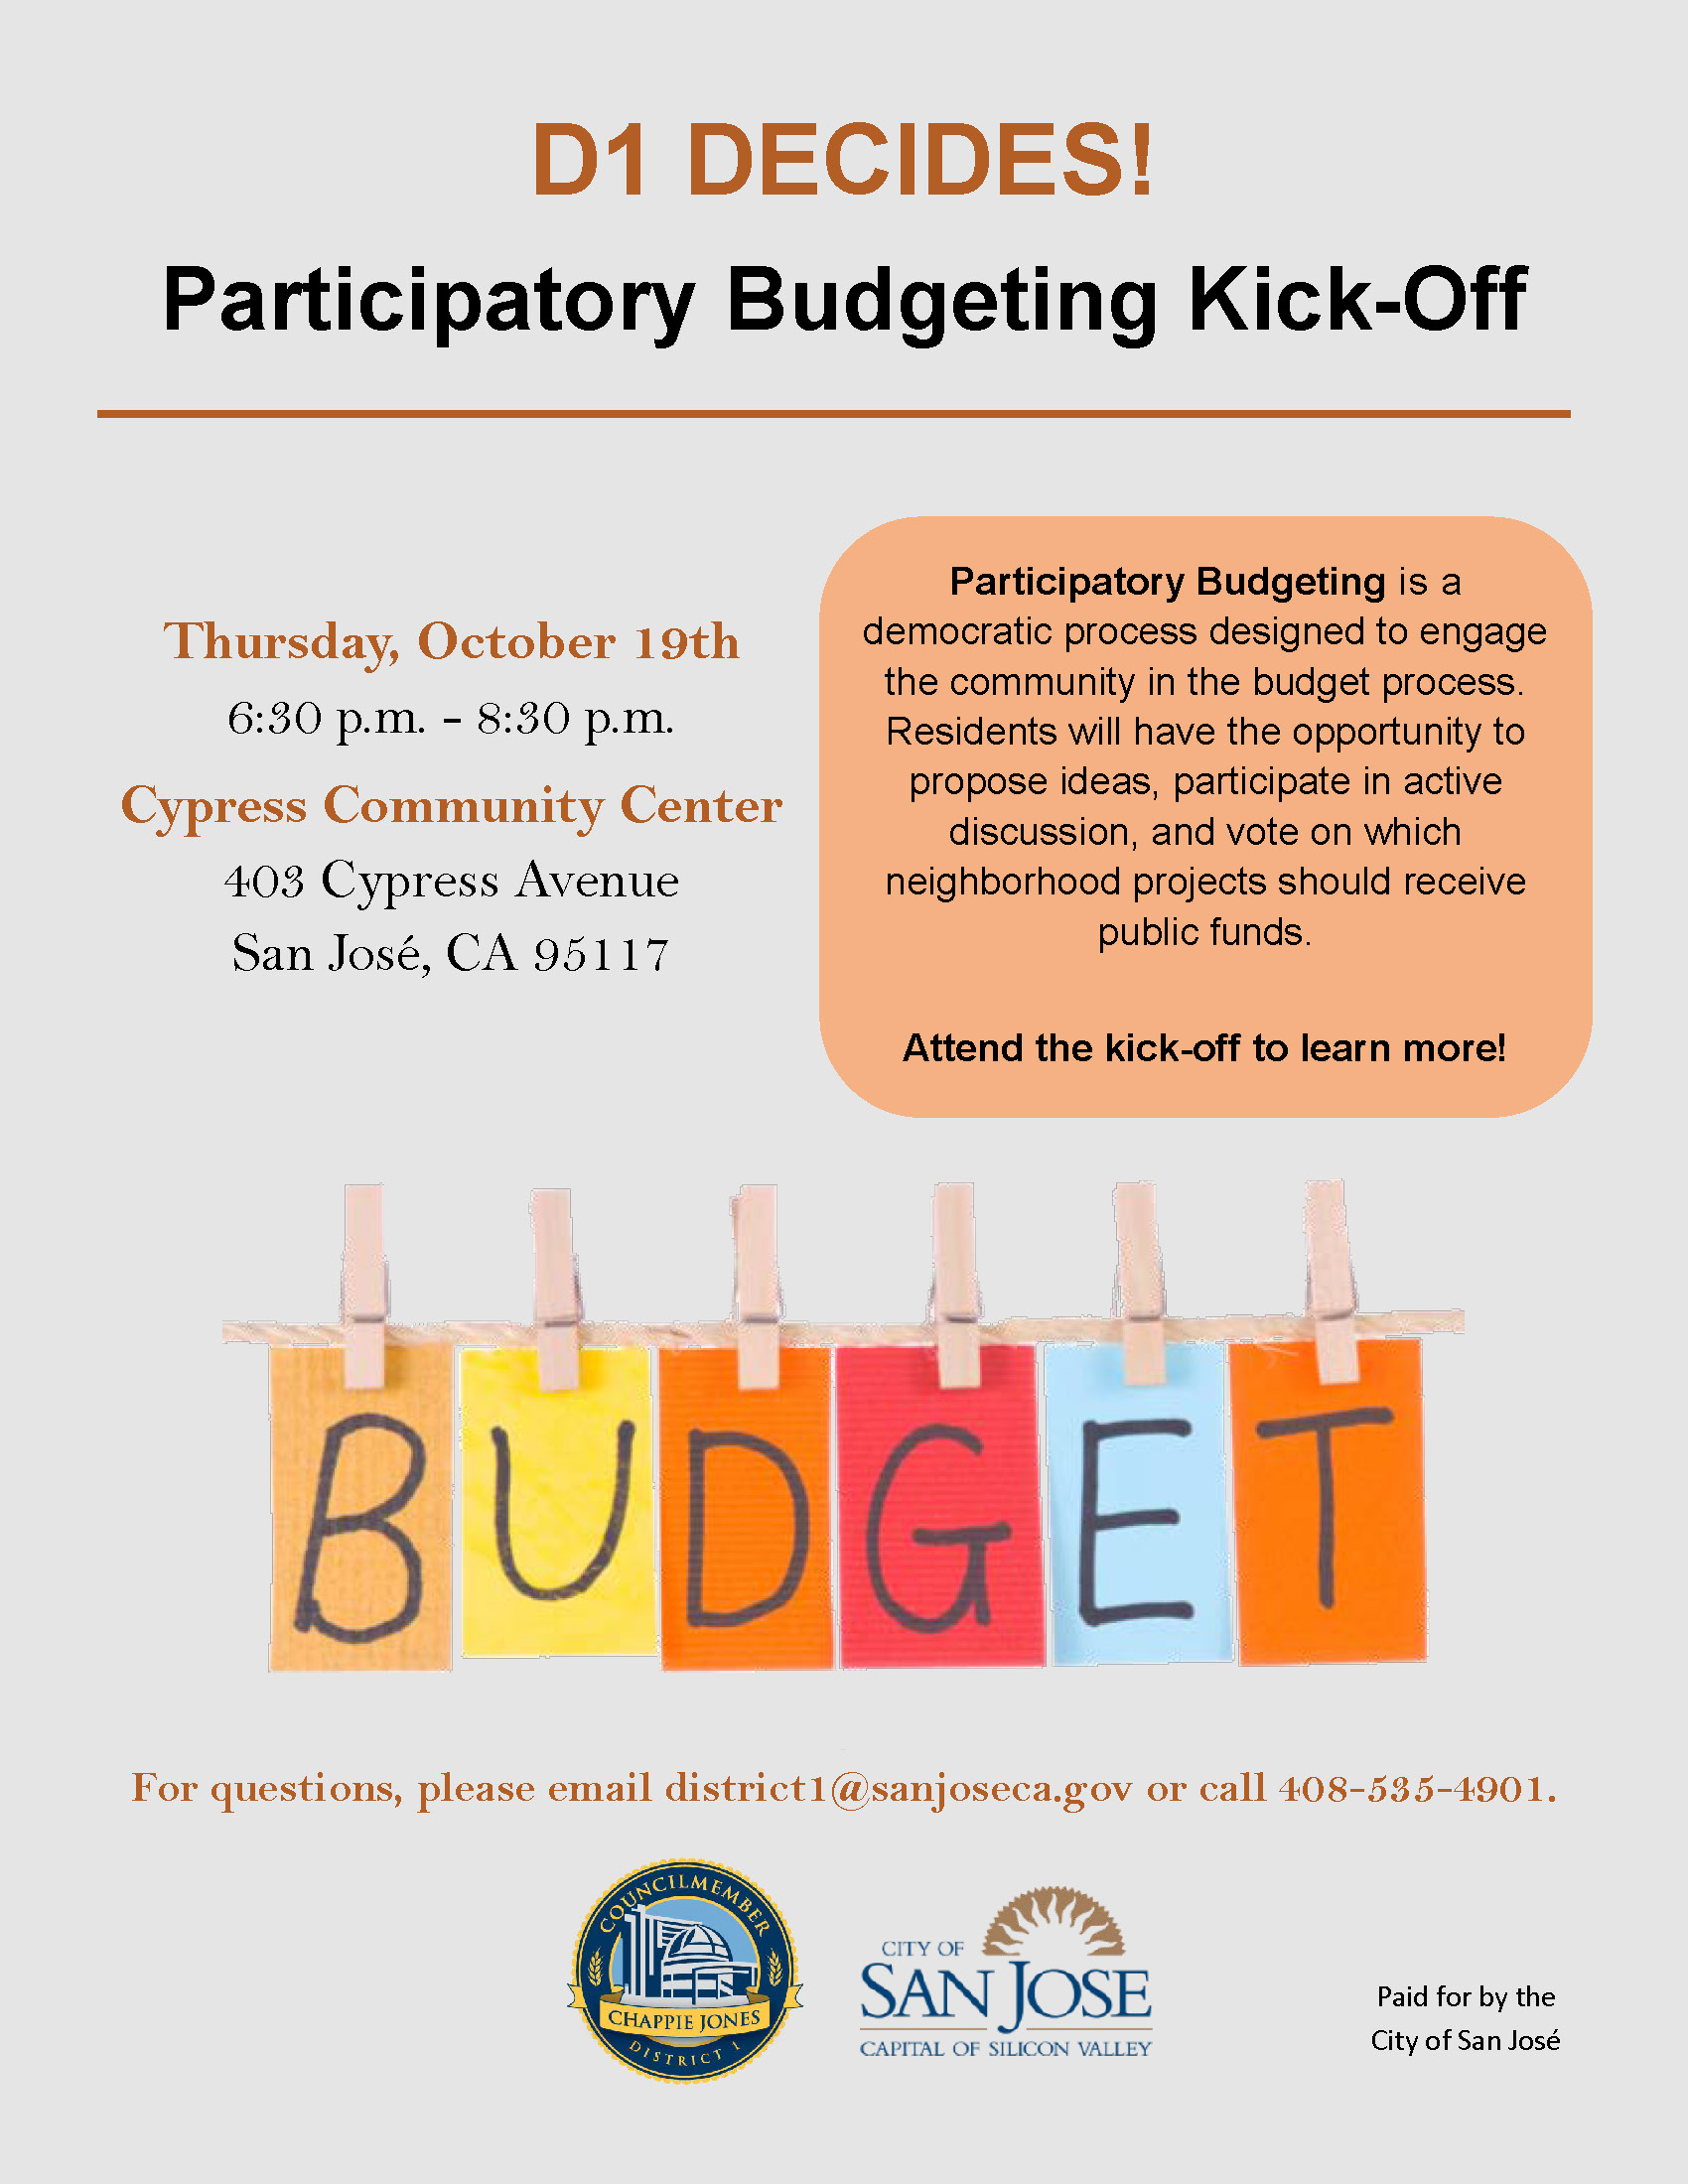 Flyer for the Participatory Budget kick-off meeting on October 19th at the Cypress Community Center.